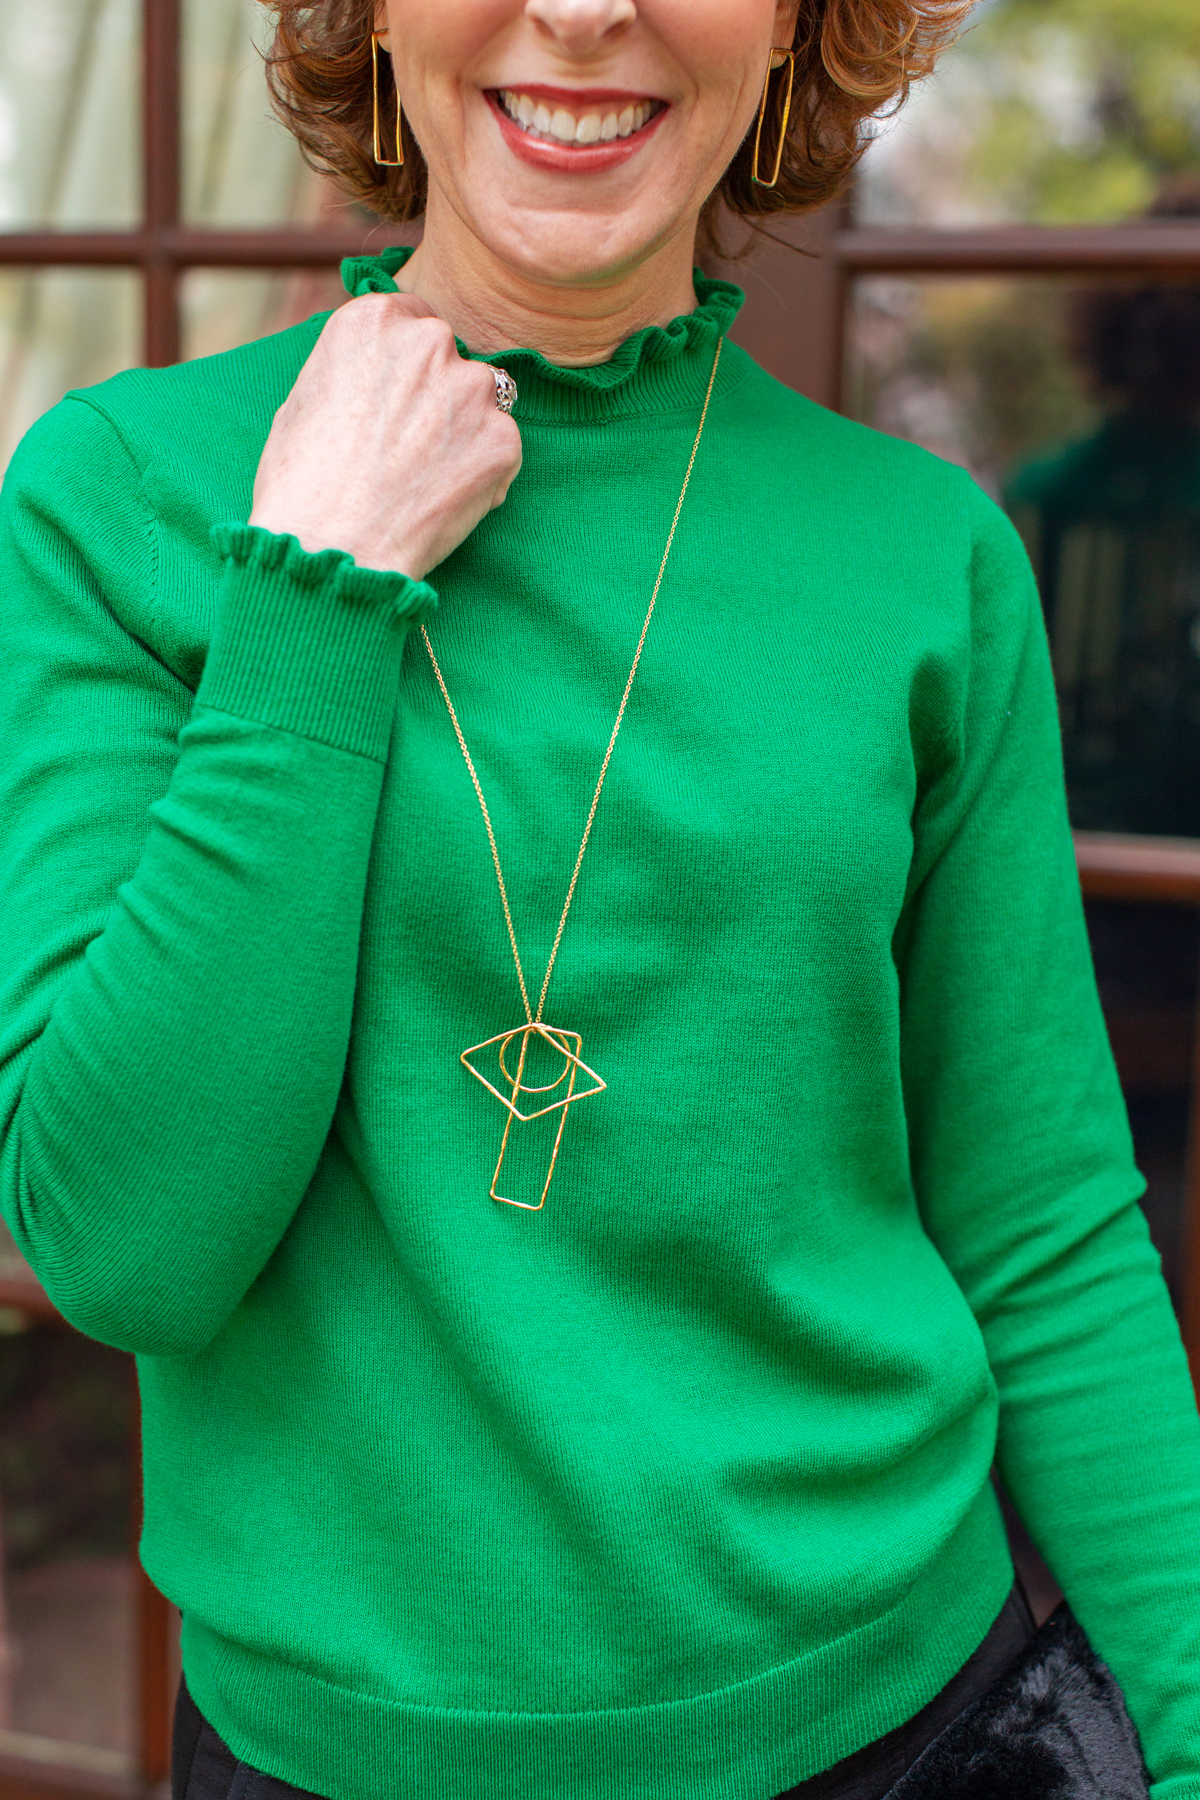 woman in green sweater with neck ruffle demonstrating a spring & summer style trend